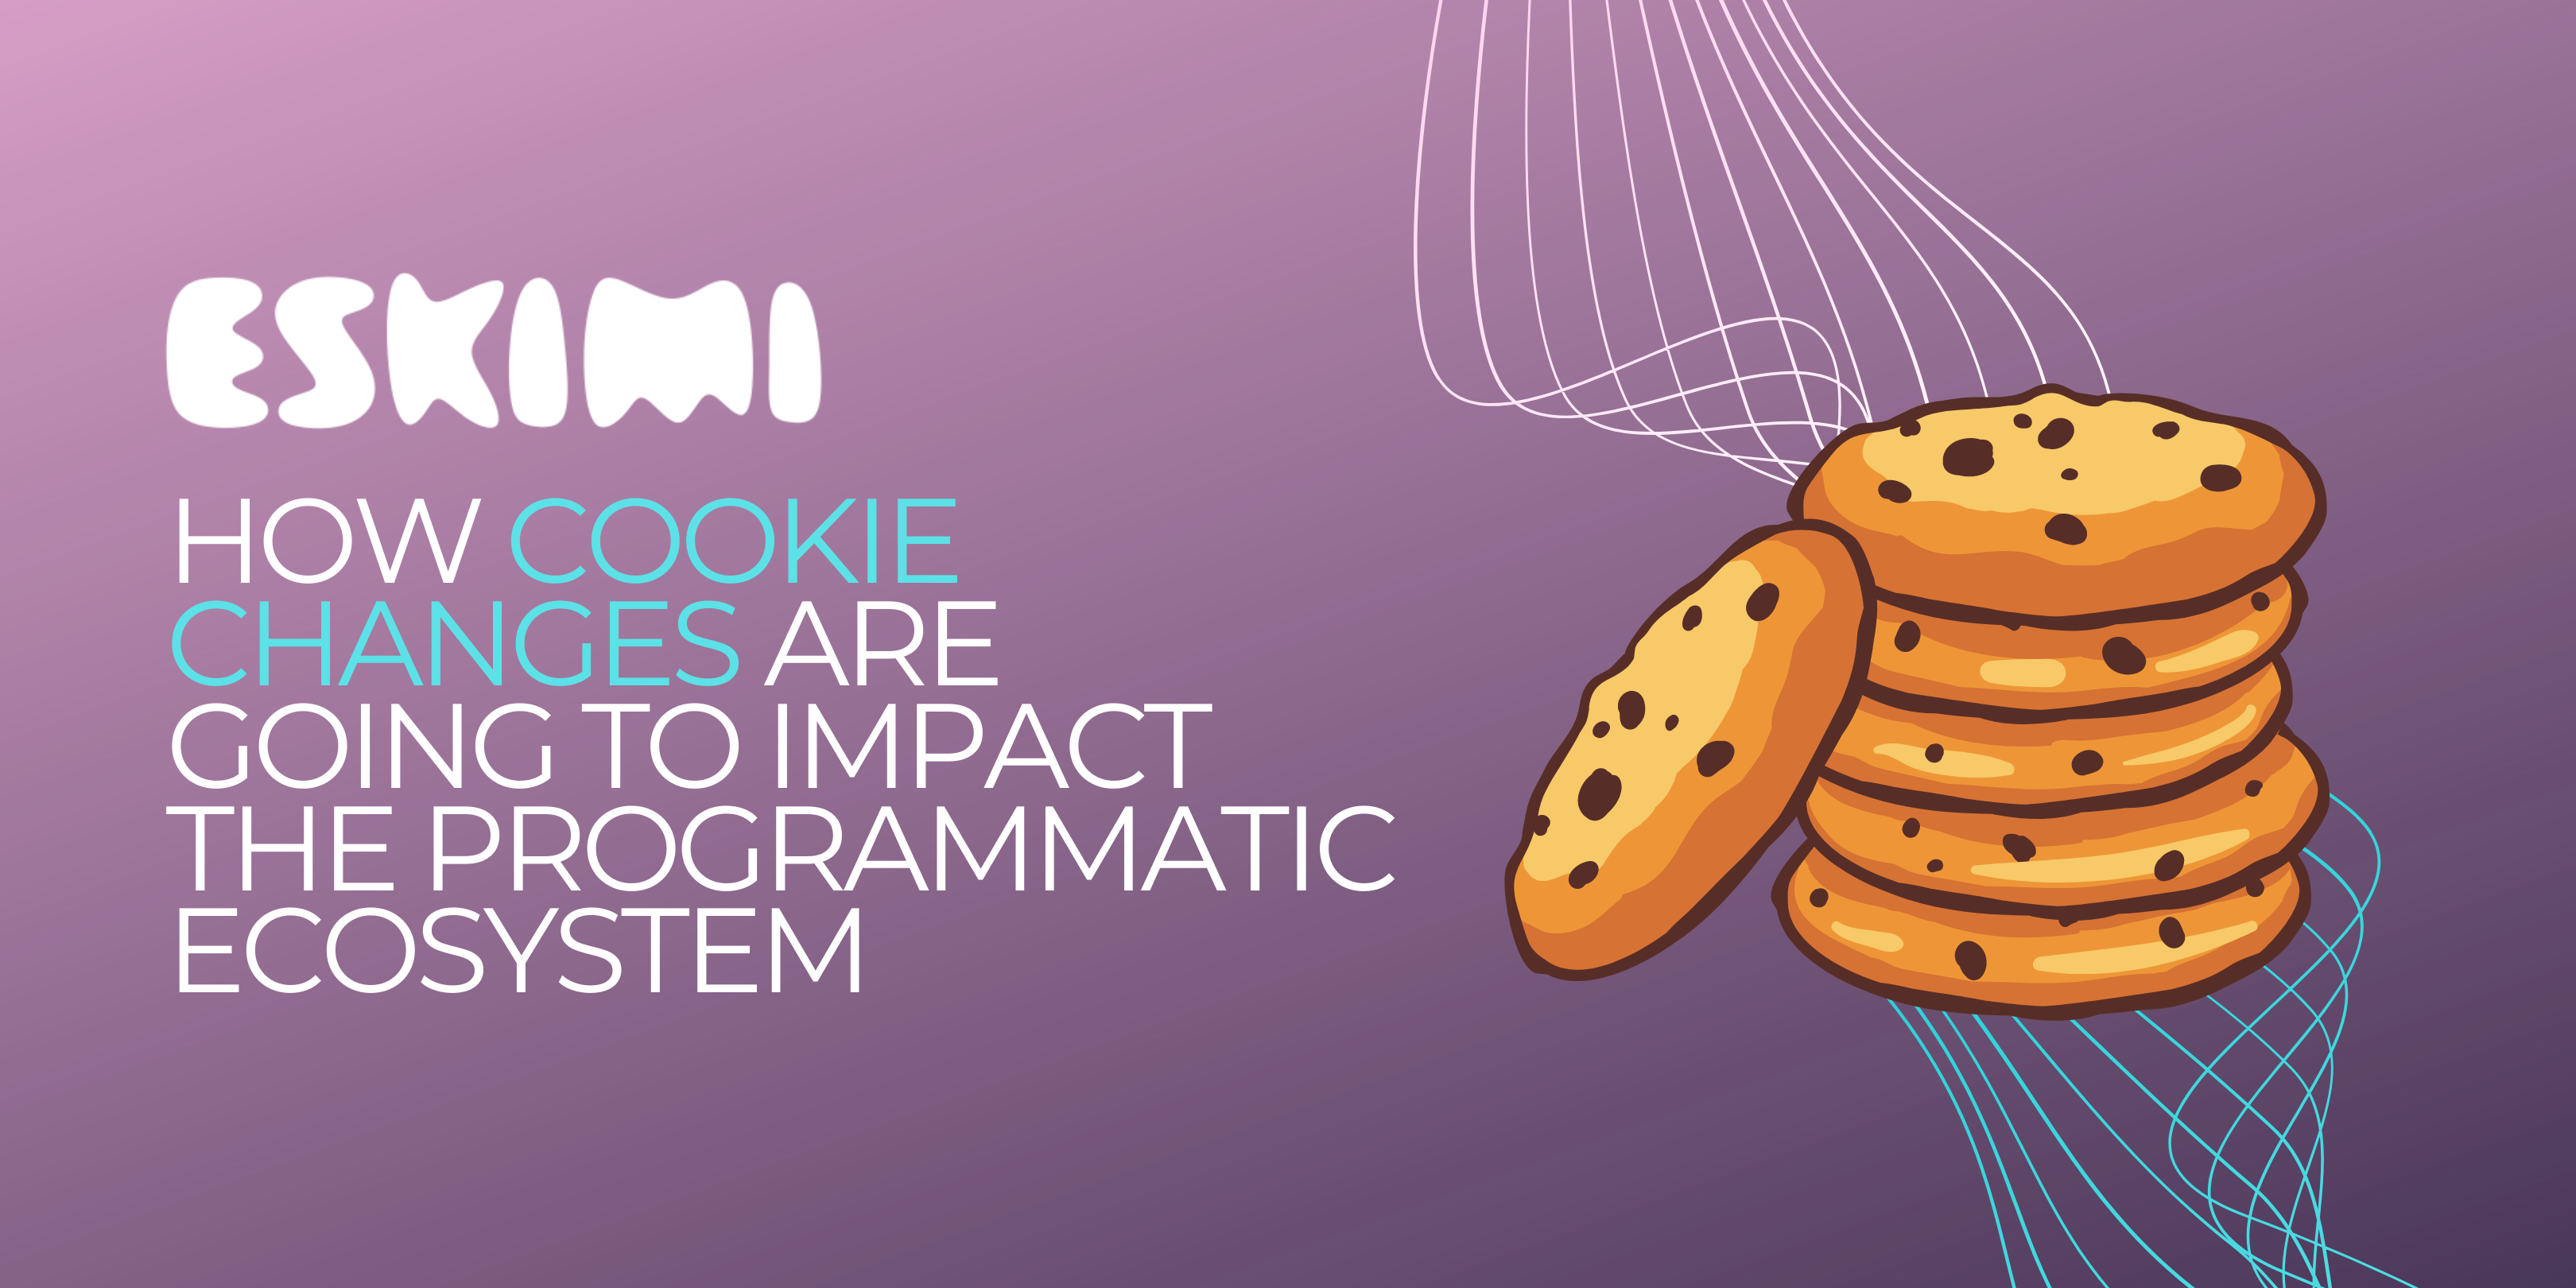 How Cookie Changes Are Going To Impact The Programmatic Ecosystem